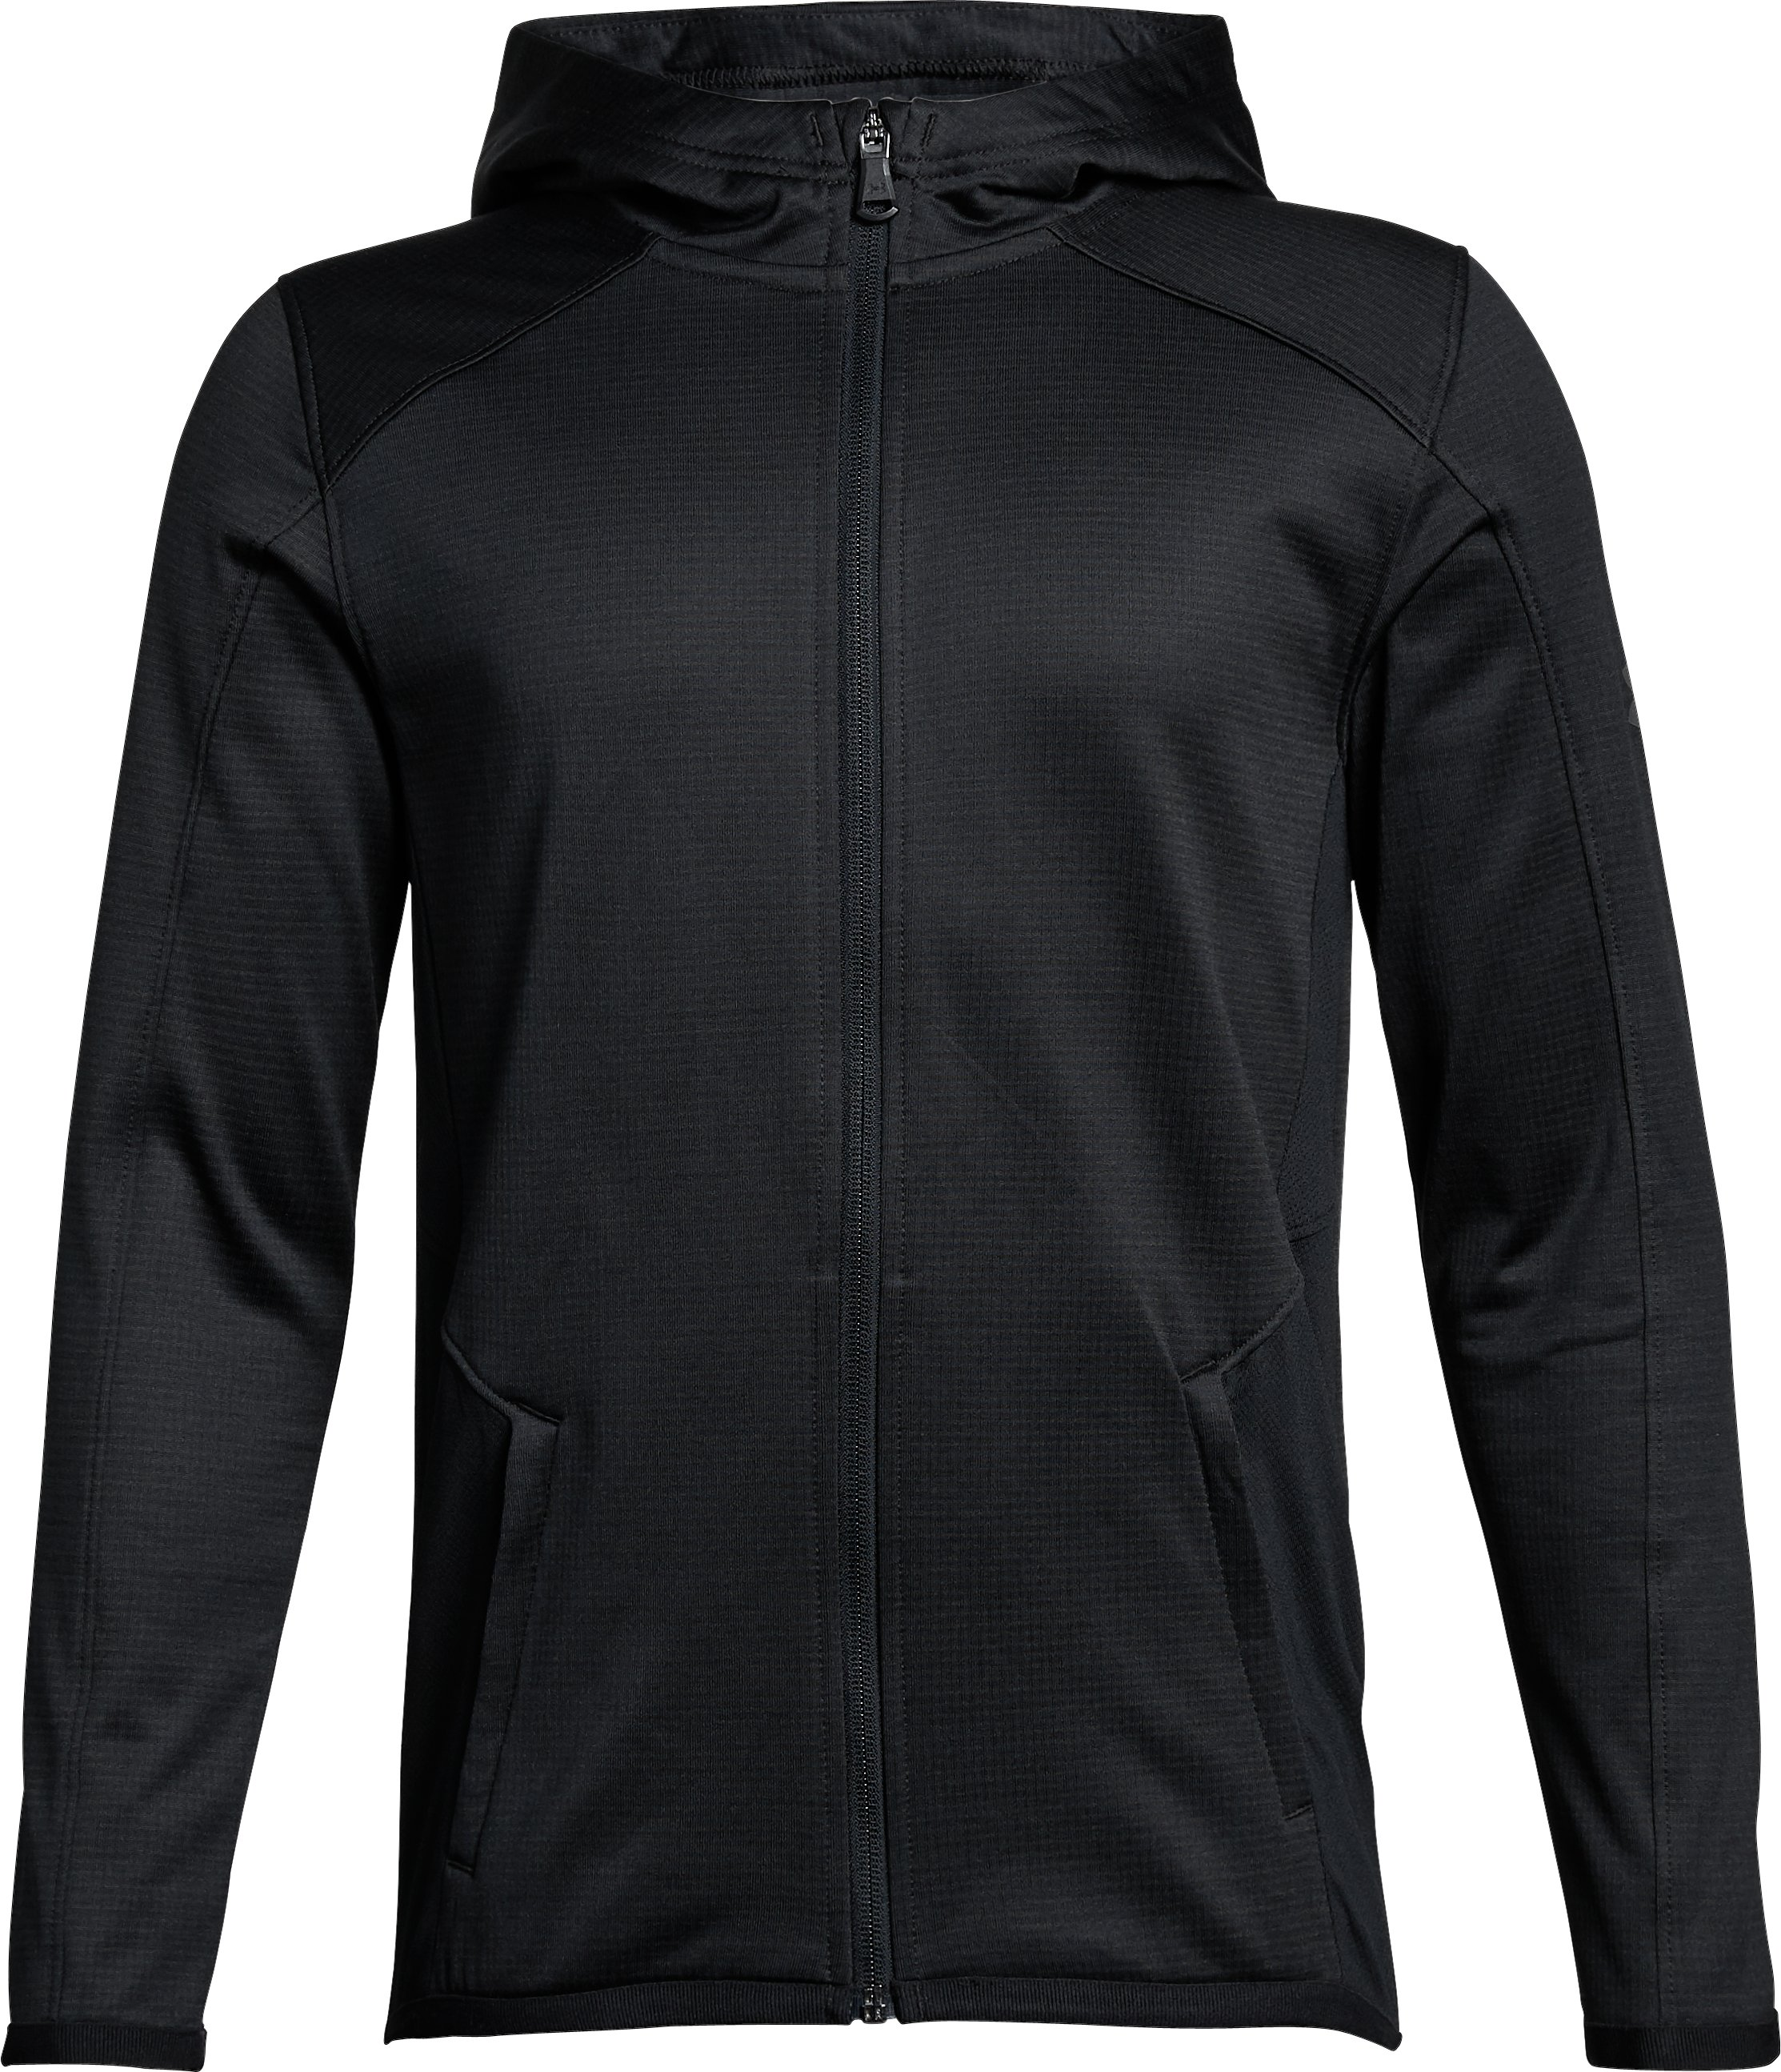 Boys' ColdGear® Reactor Full Zip, Black